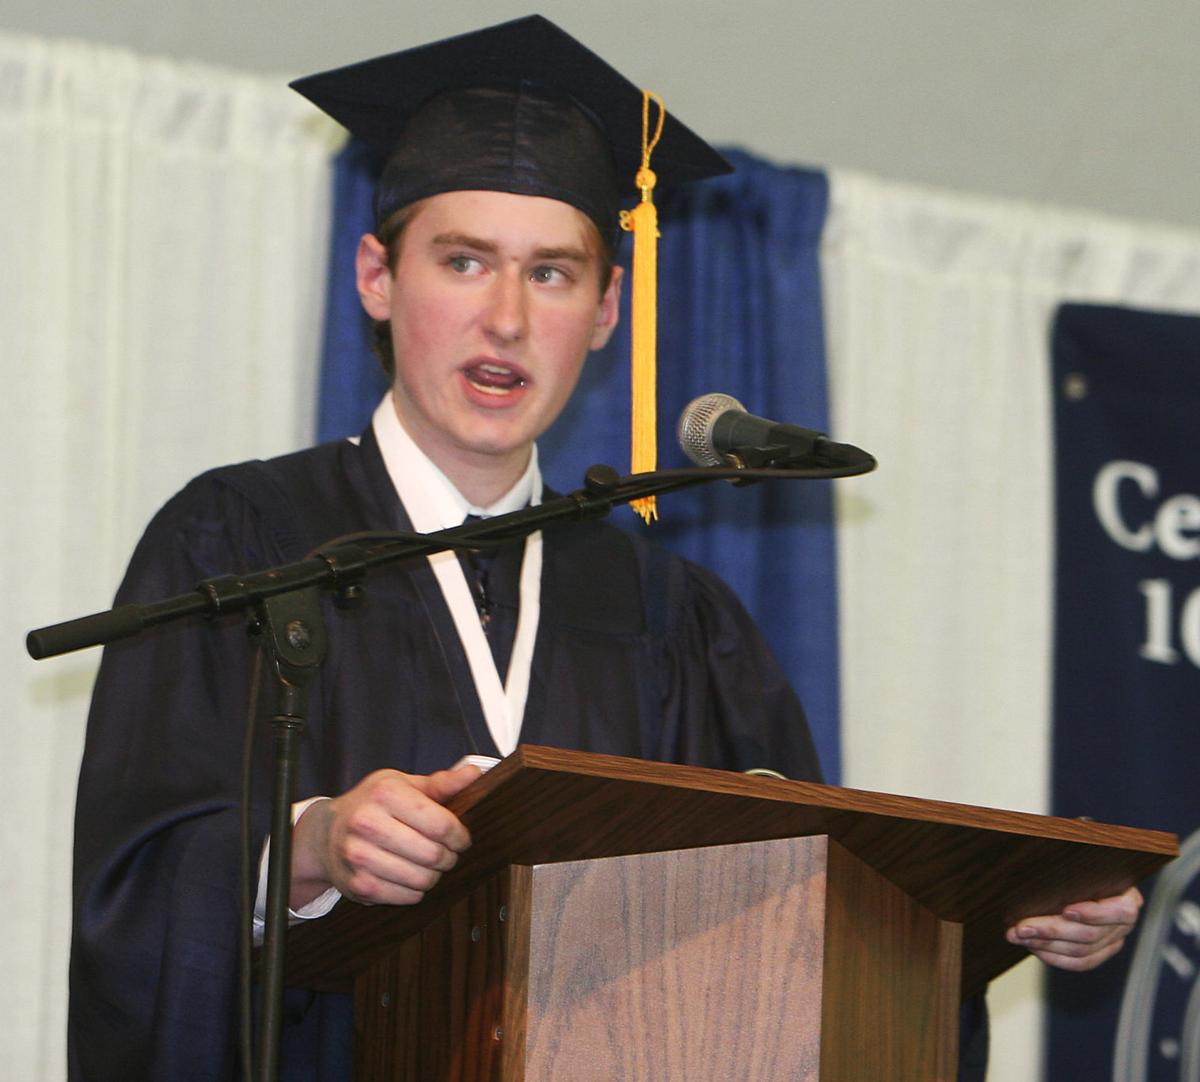 Danvers Valedictorian Richard Jay Powers Of North Reading Addresses The Graduating Class 2008 At St Johns Prep School In Sunday Morning During